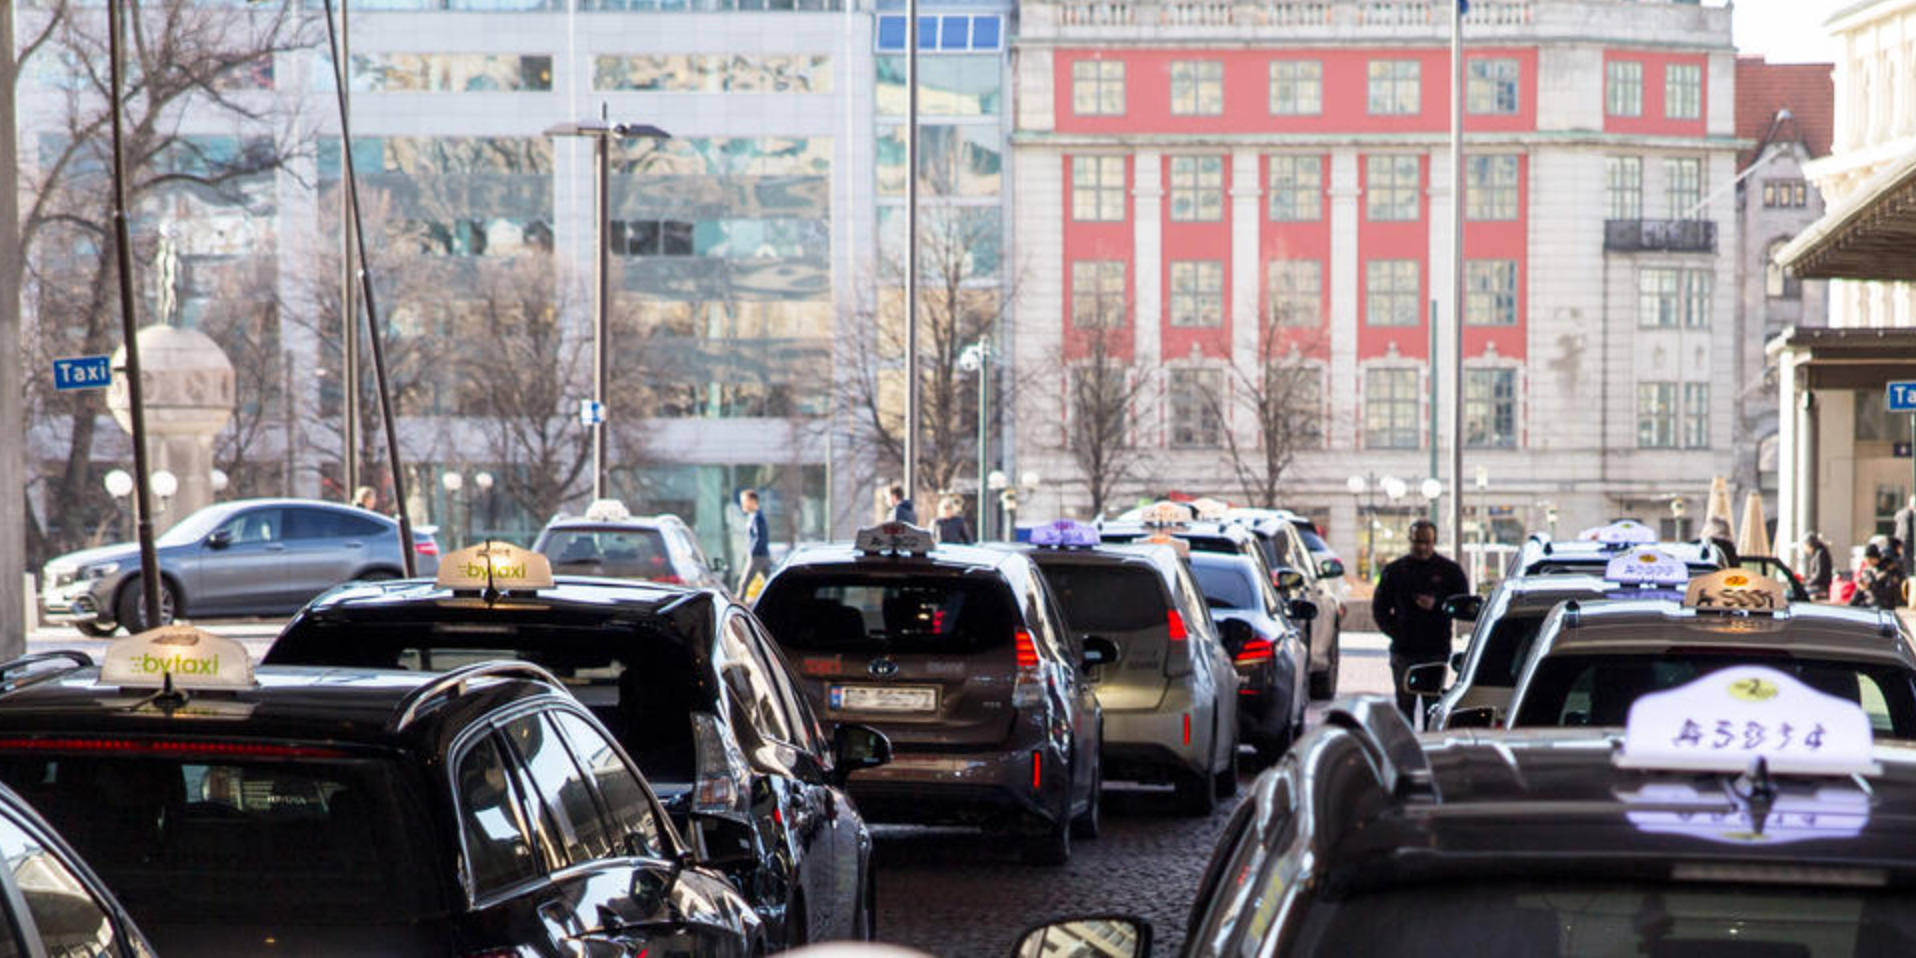 electrek.co - Phil Dzikiy - Oslo to become first city with wireless charging infrastructure for electric taxis